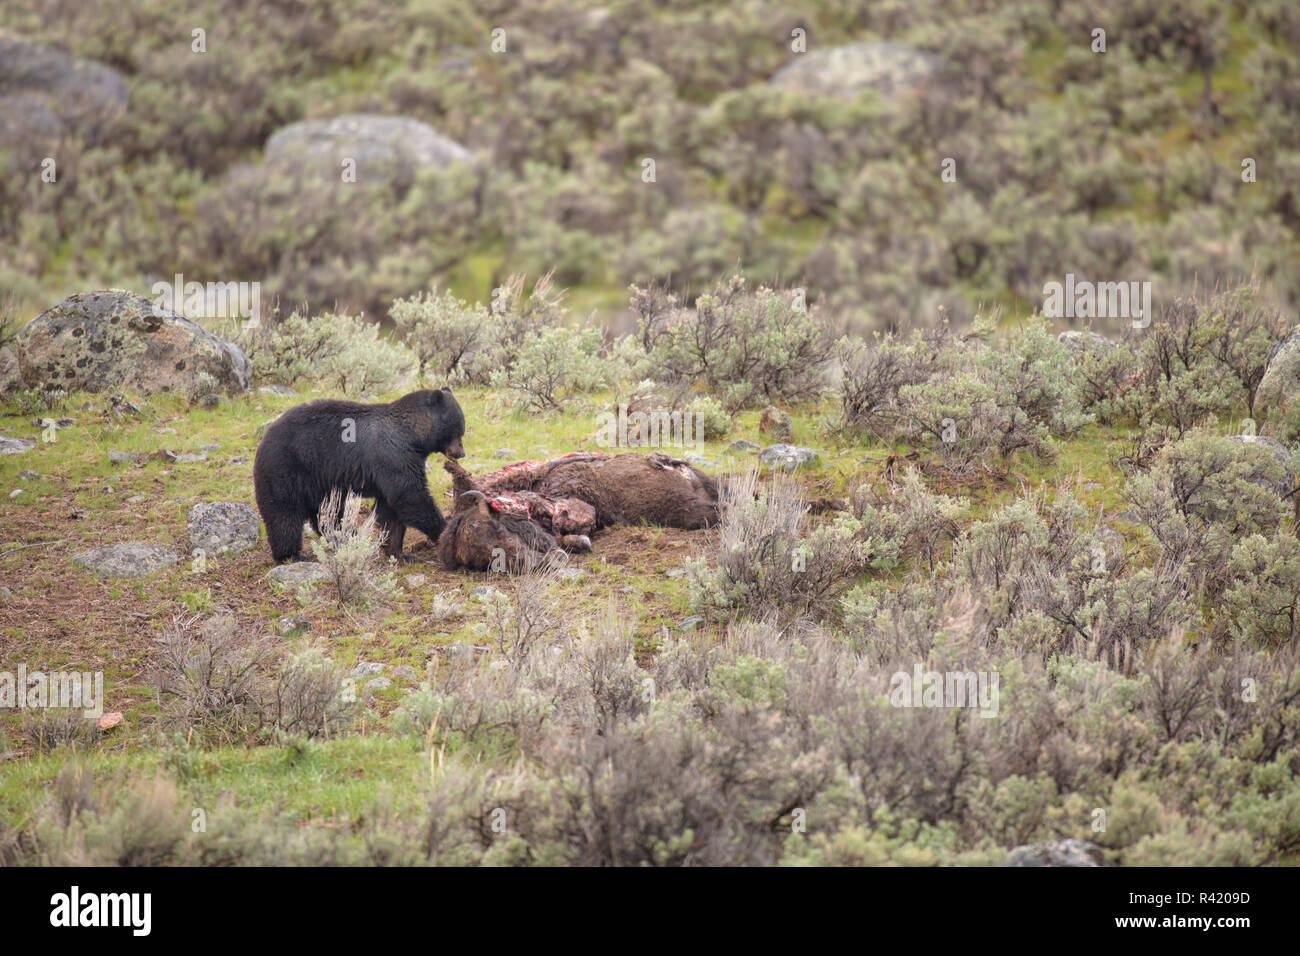 USA, Wyoming, Yellowstone National Park. Black bear feeds on bison carcass killed by wolves. - Stock Image